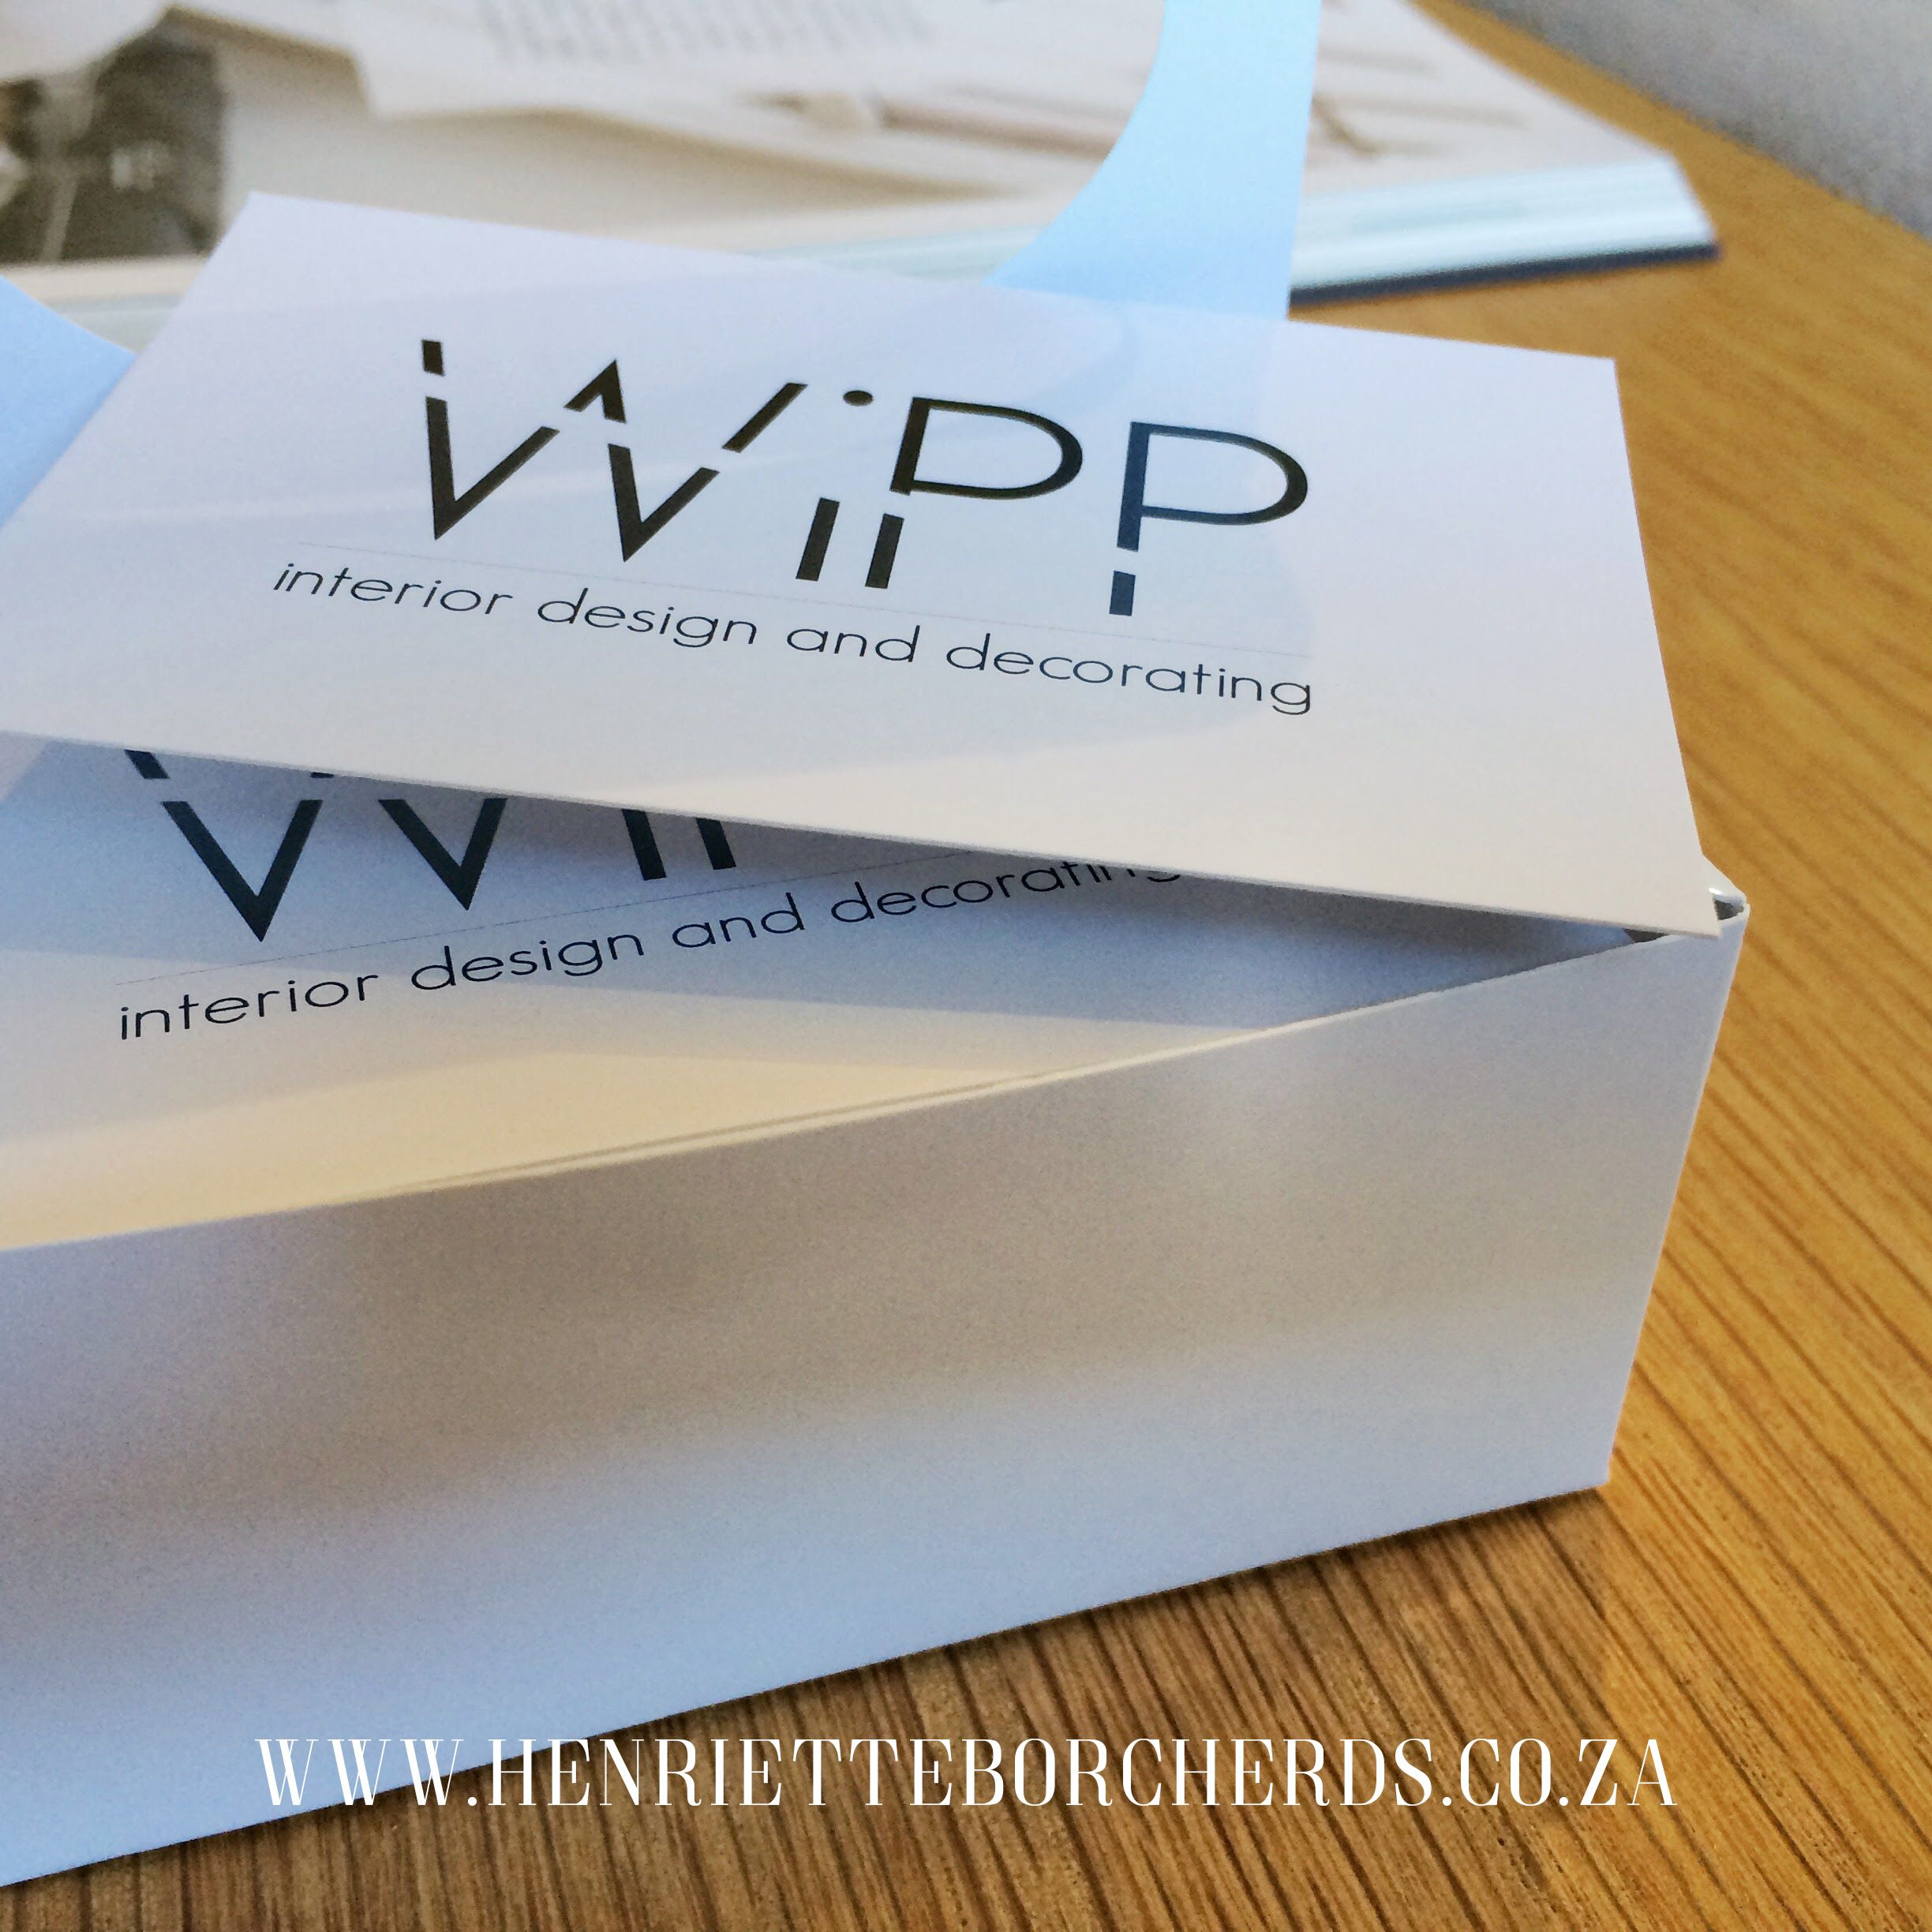 wipp design business cards stationery design logo h borcherds